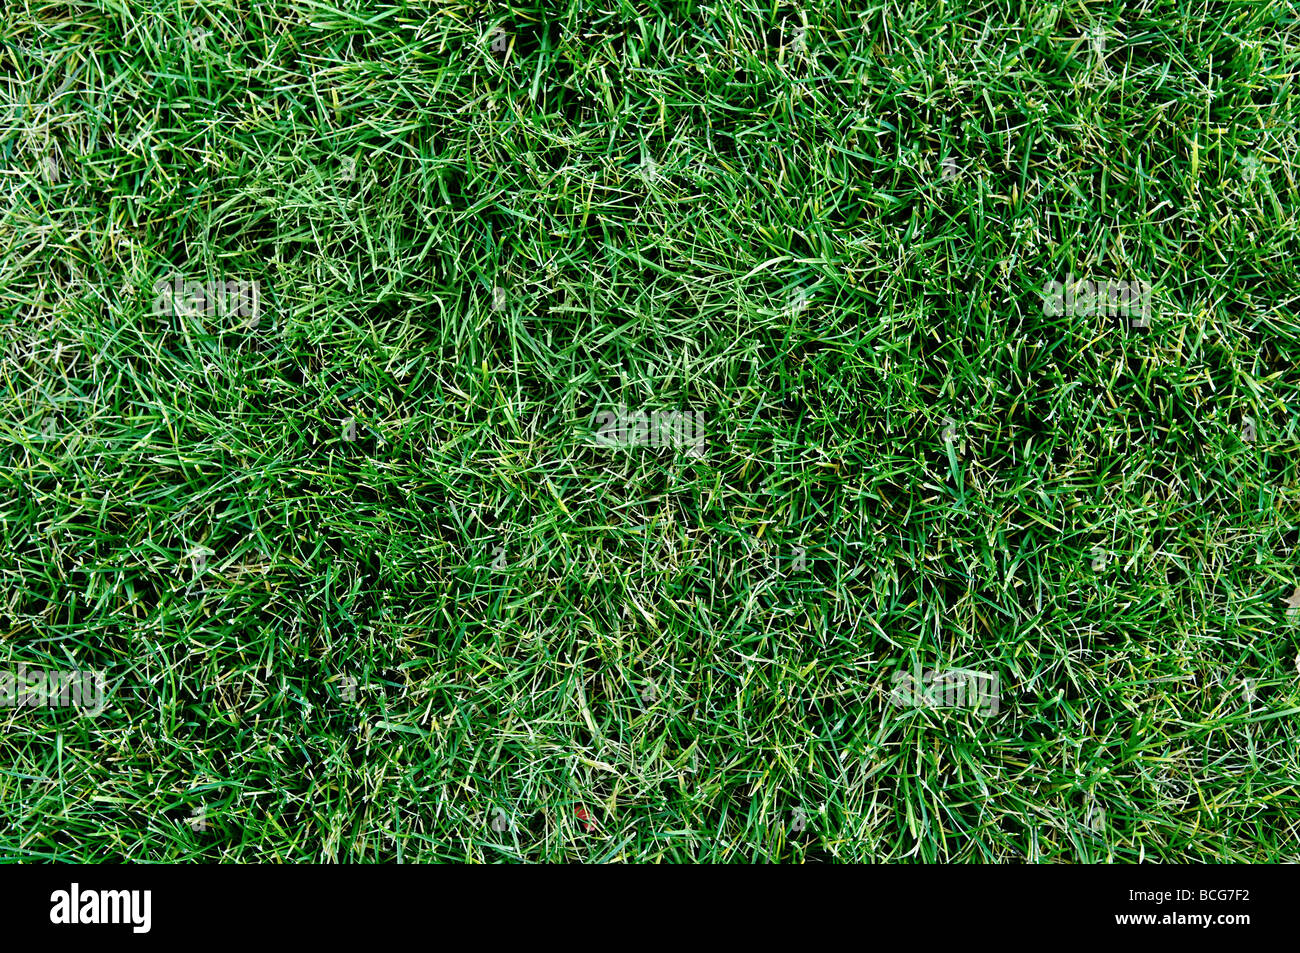 top view of fresh lawn grass - Stock Image